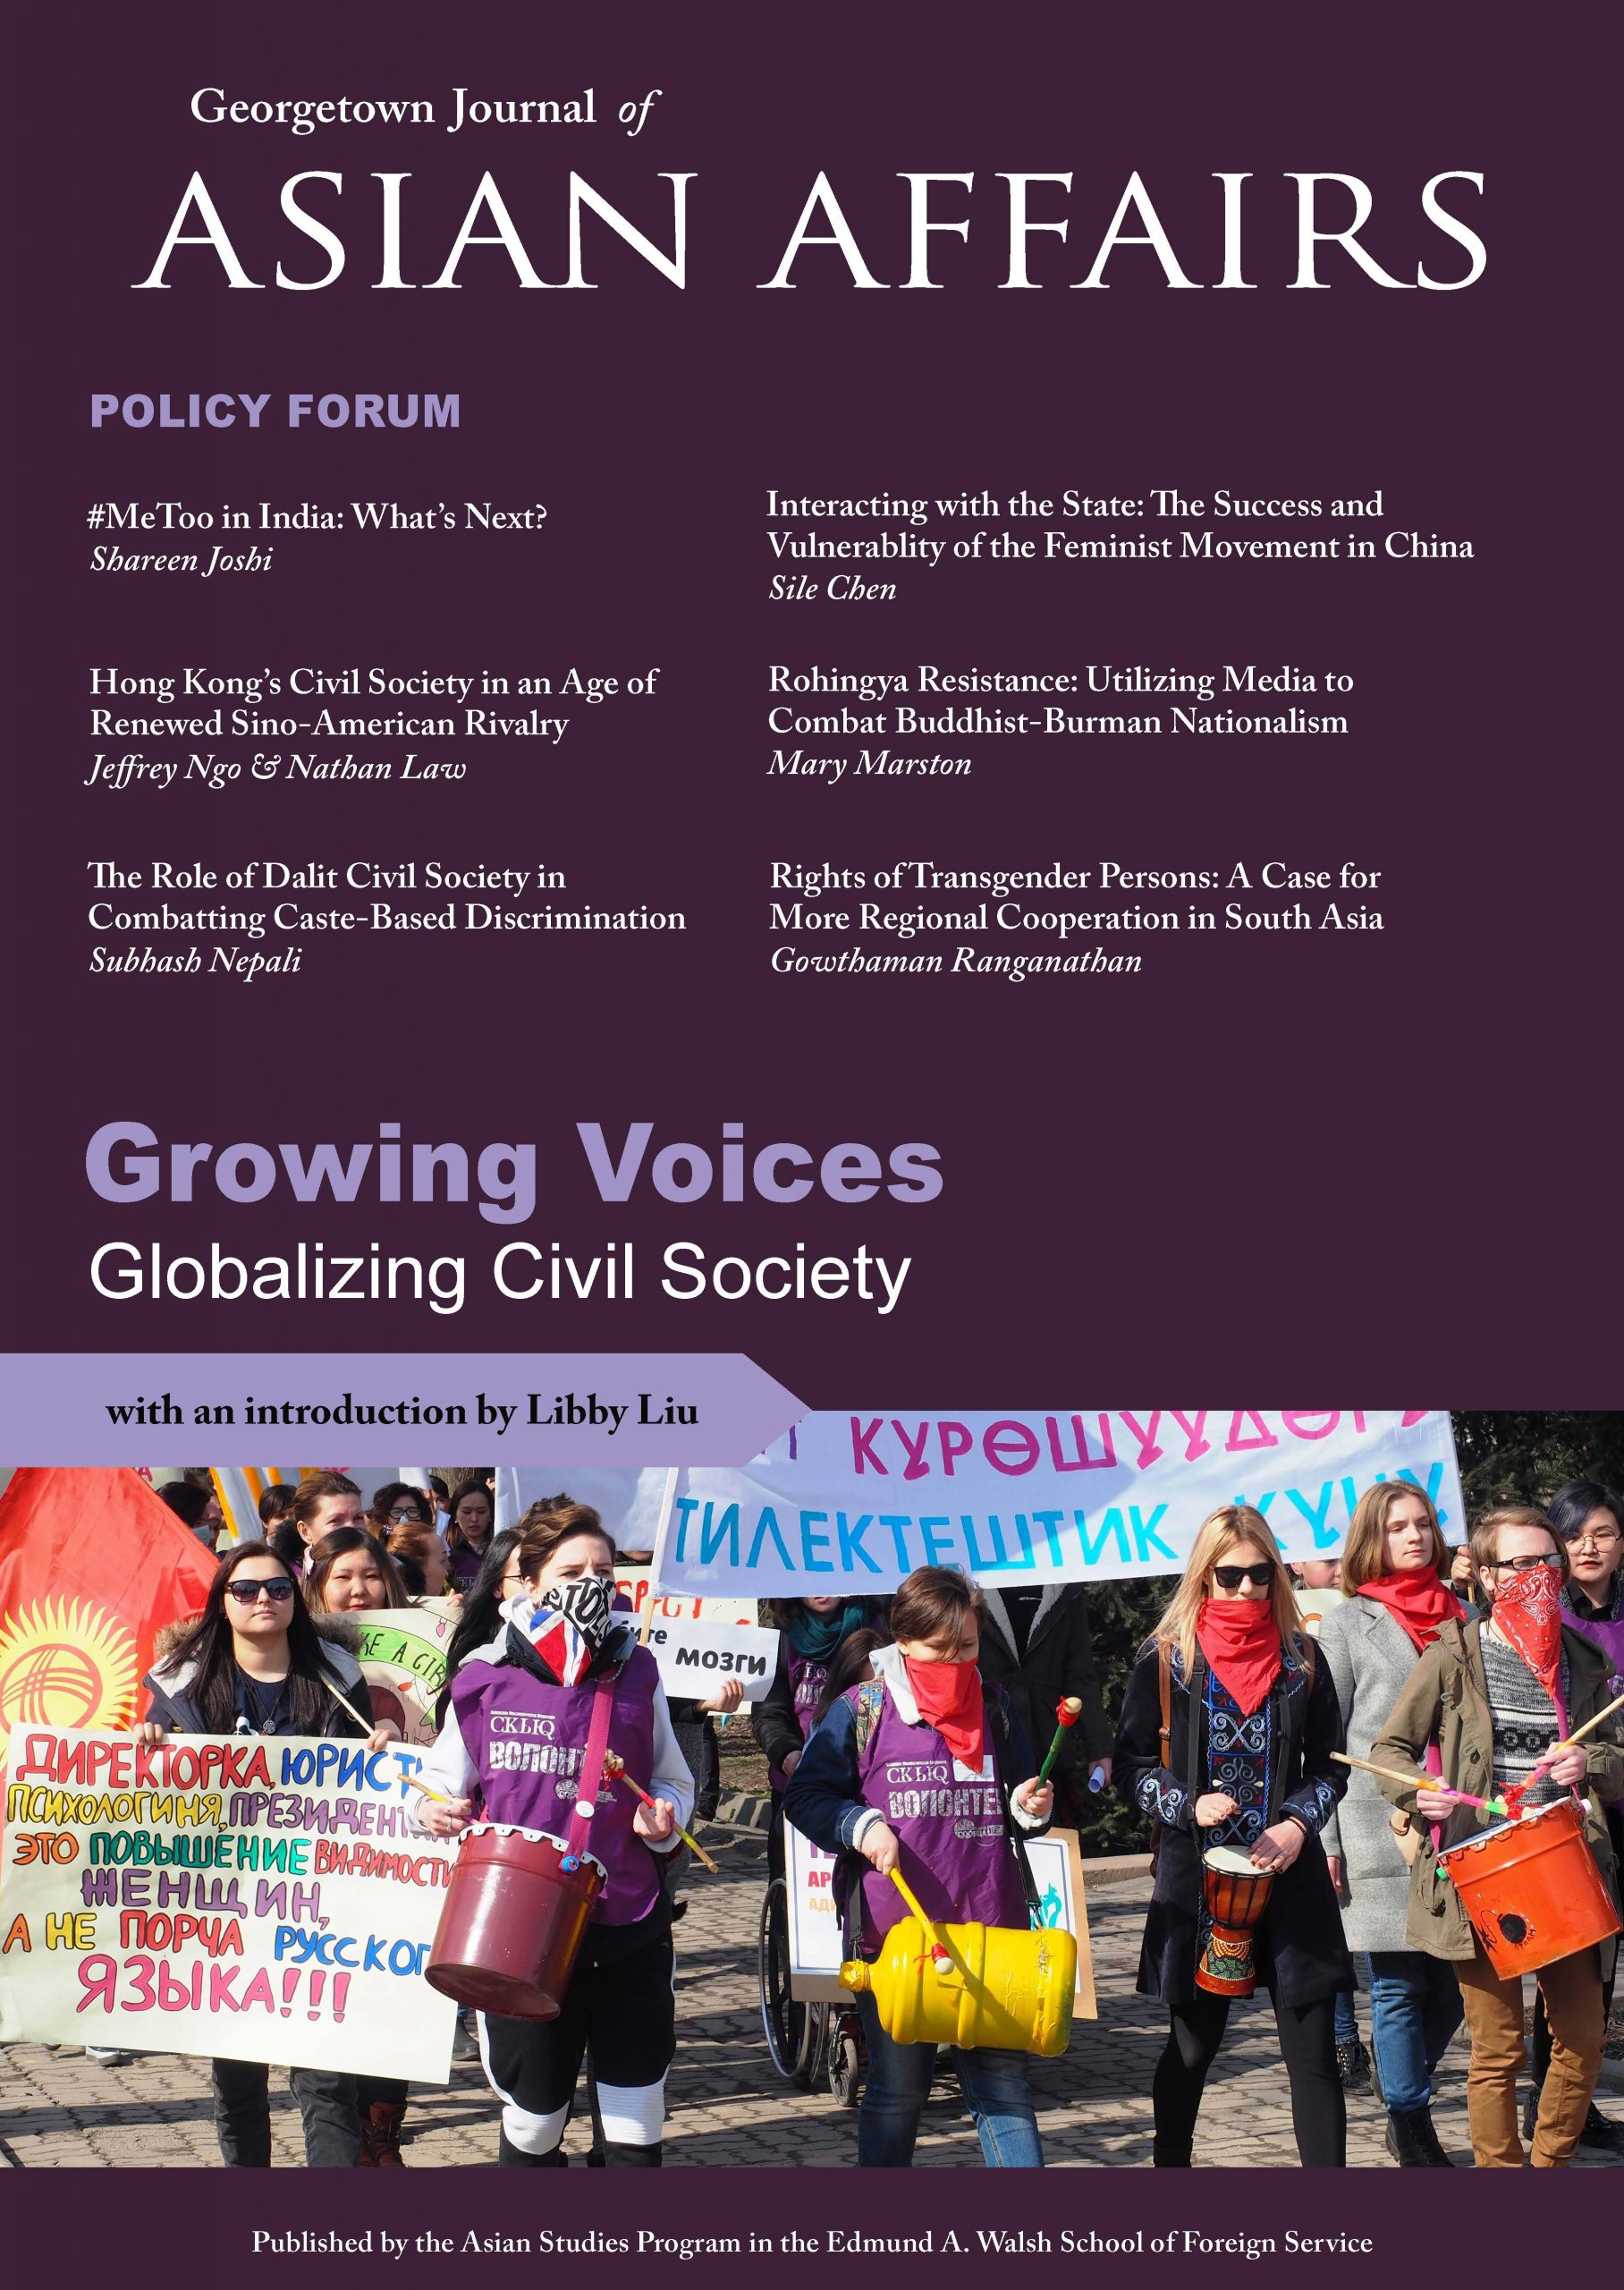 Georgetown Journal of Asian Affairs Volume 5 Cover